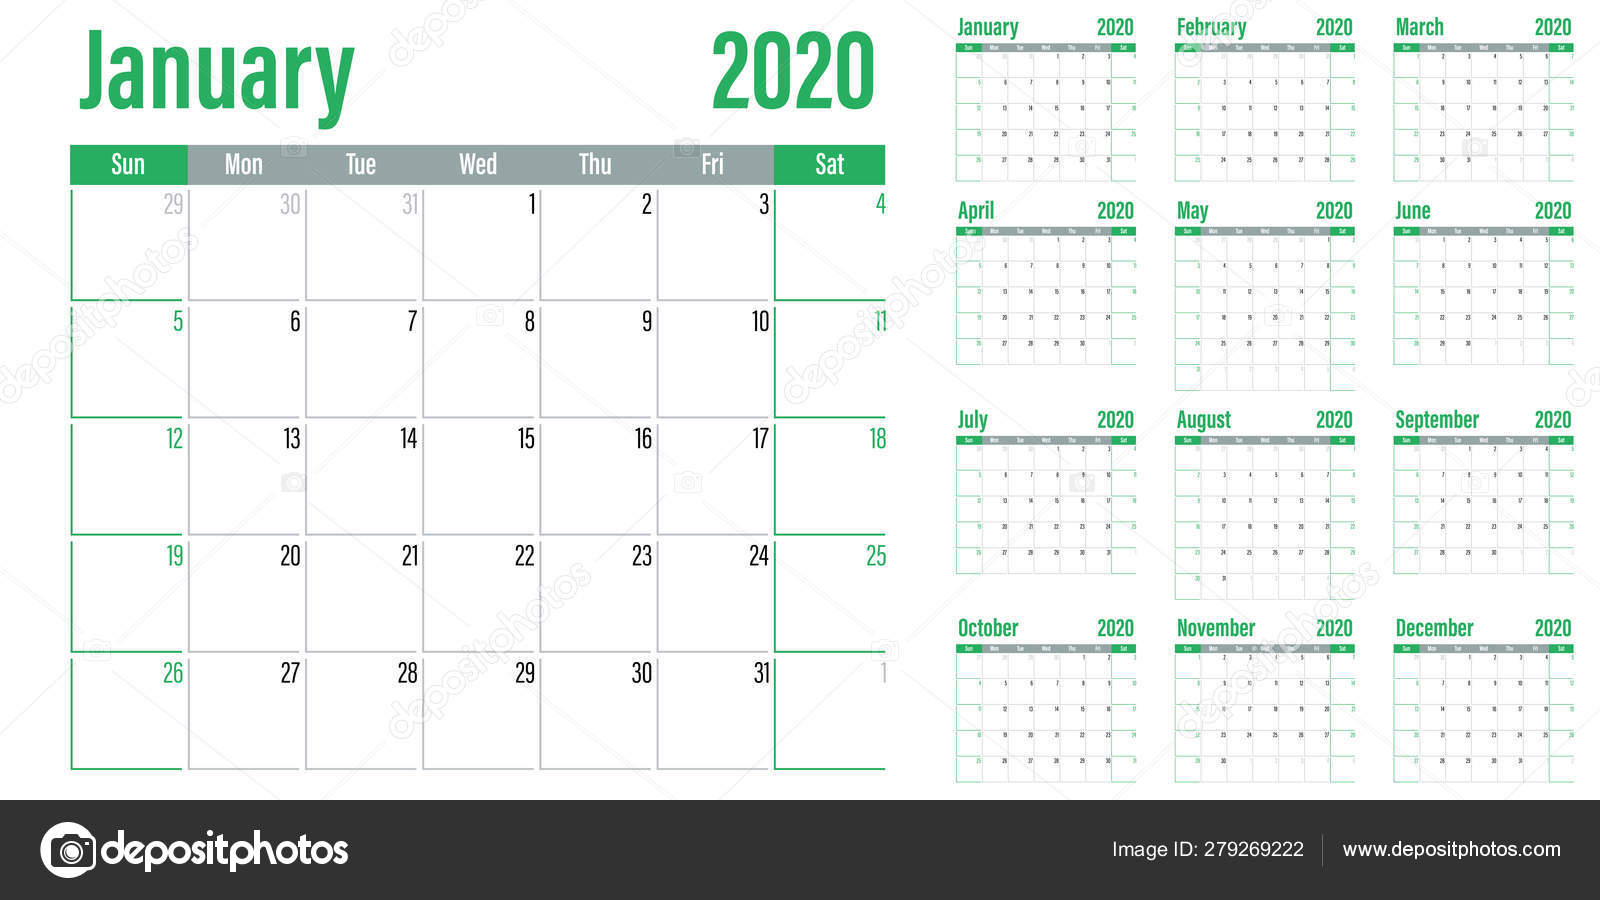 Calendar Planner 2020 Template Vector Illustration All Months Week with 2020 Calendar Sunday Through Saturday